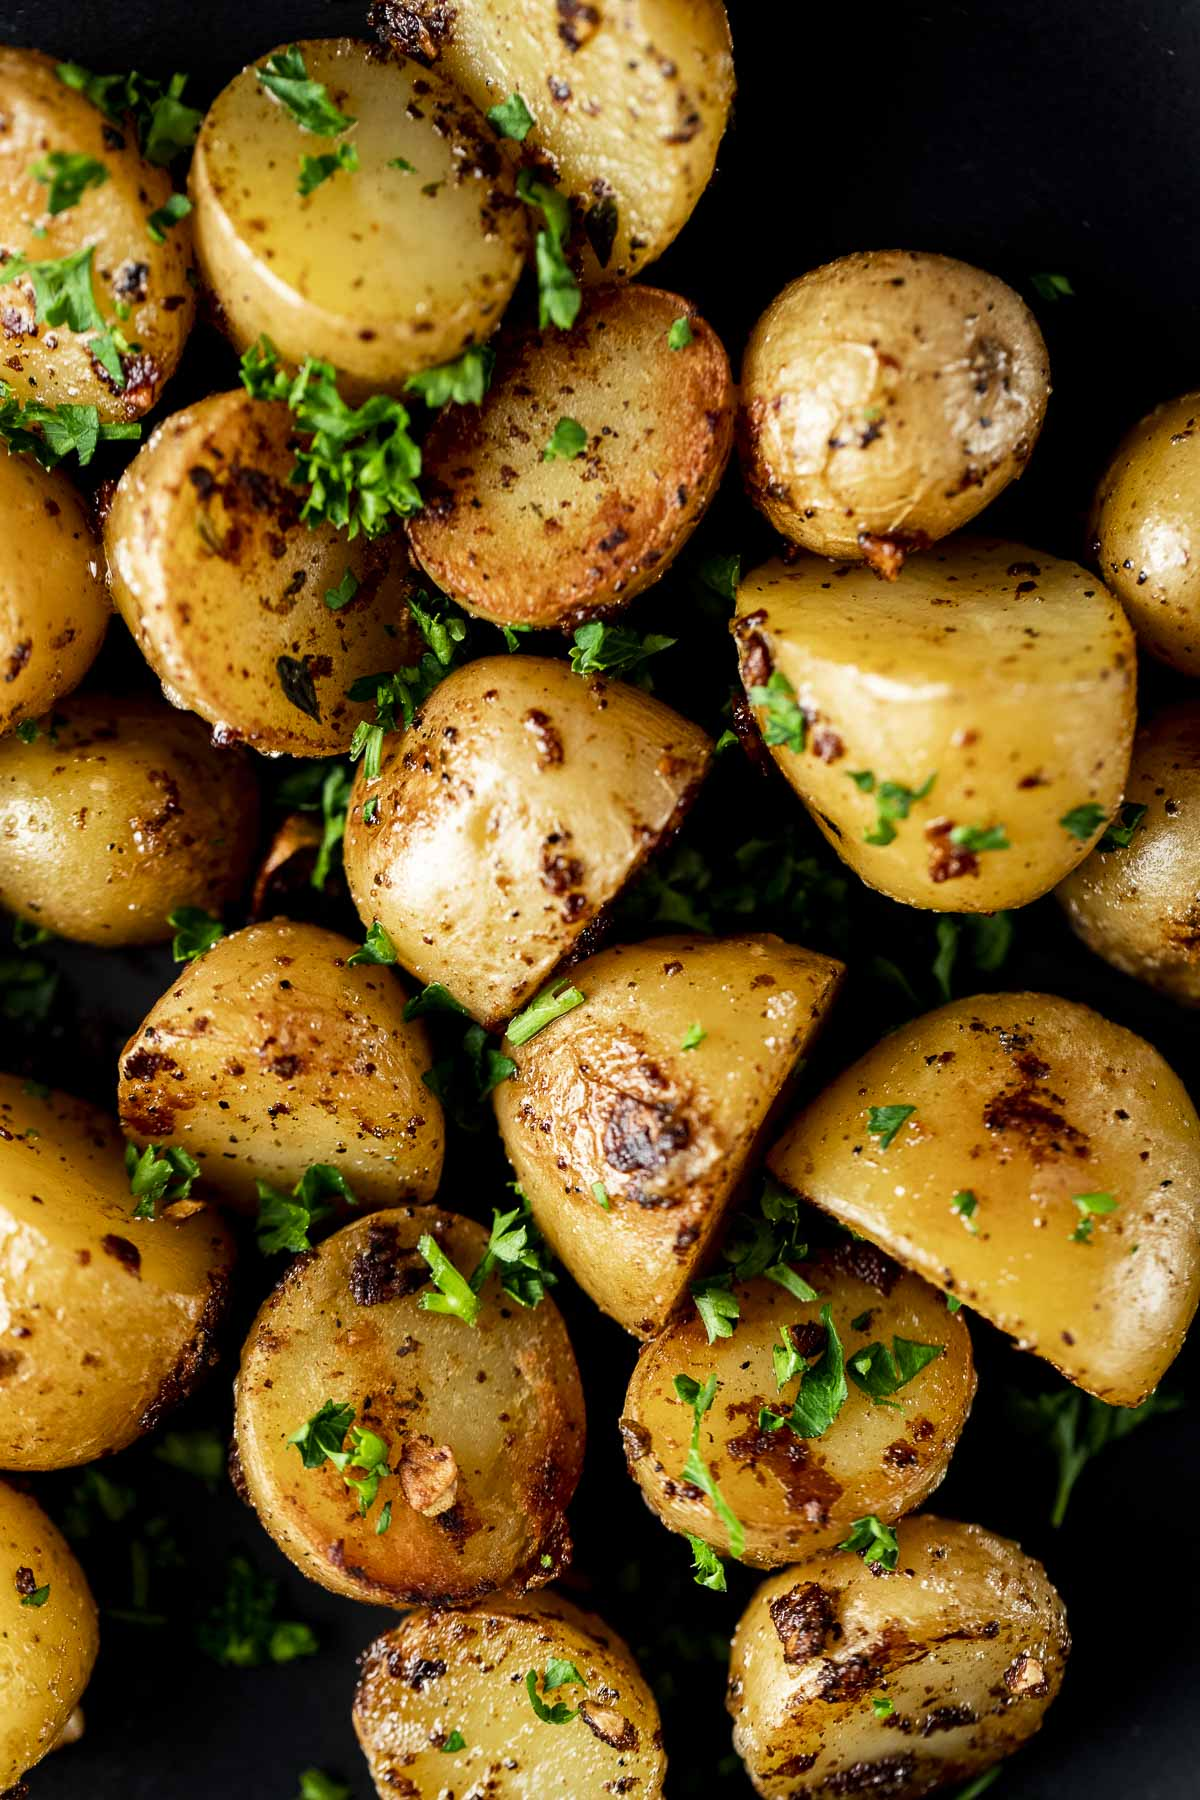 Overhead of mini sous vide potatoes on a plate with herbs sprinkled on top.